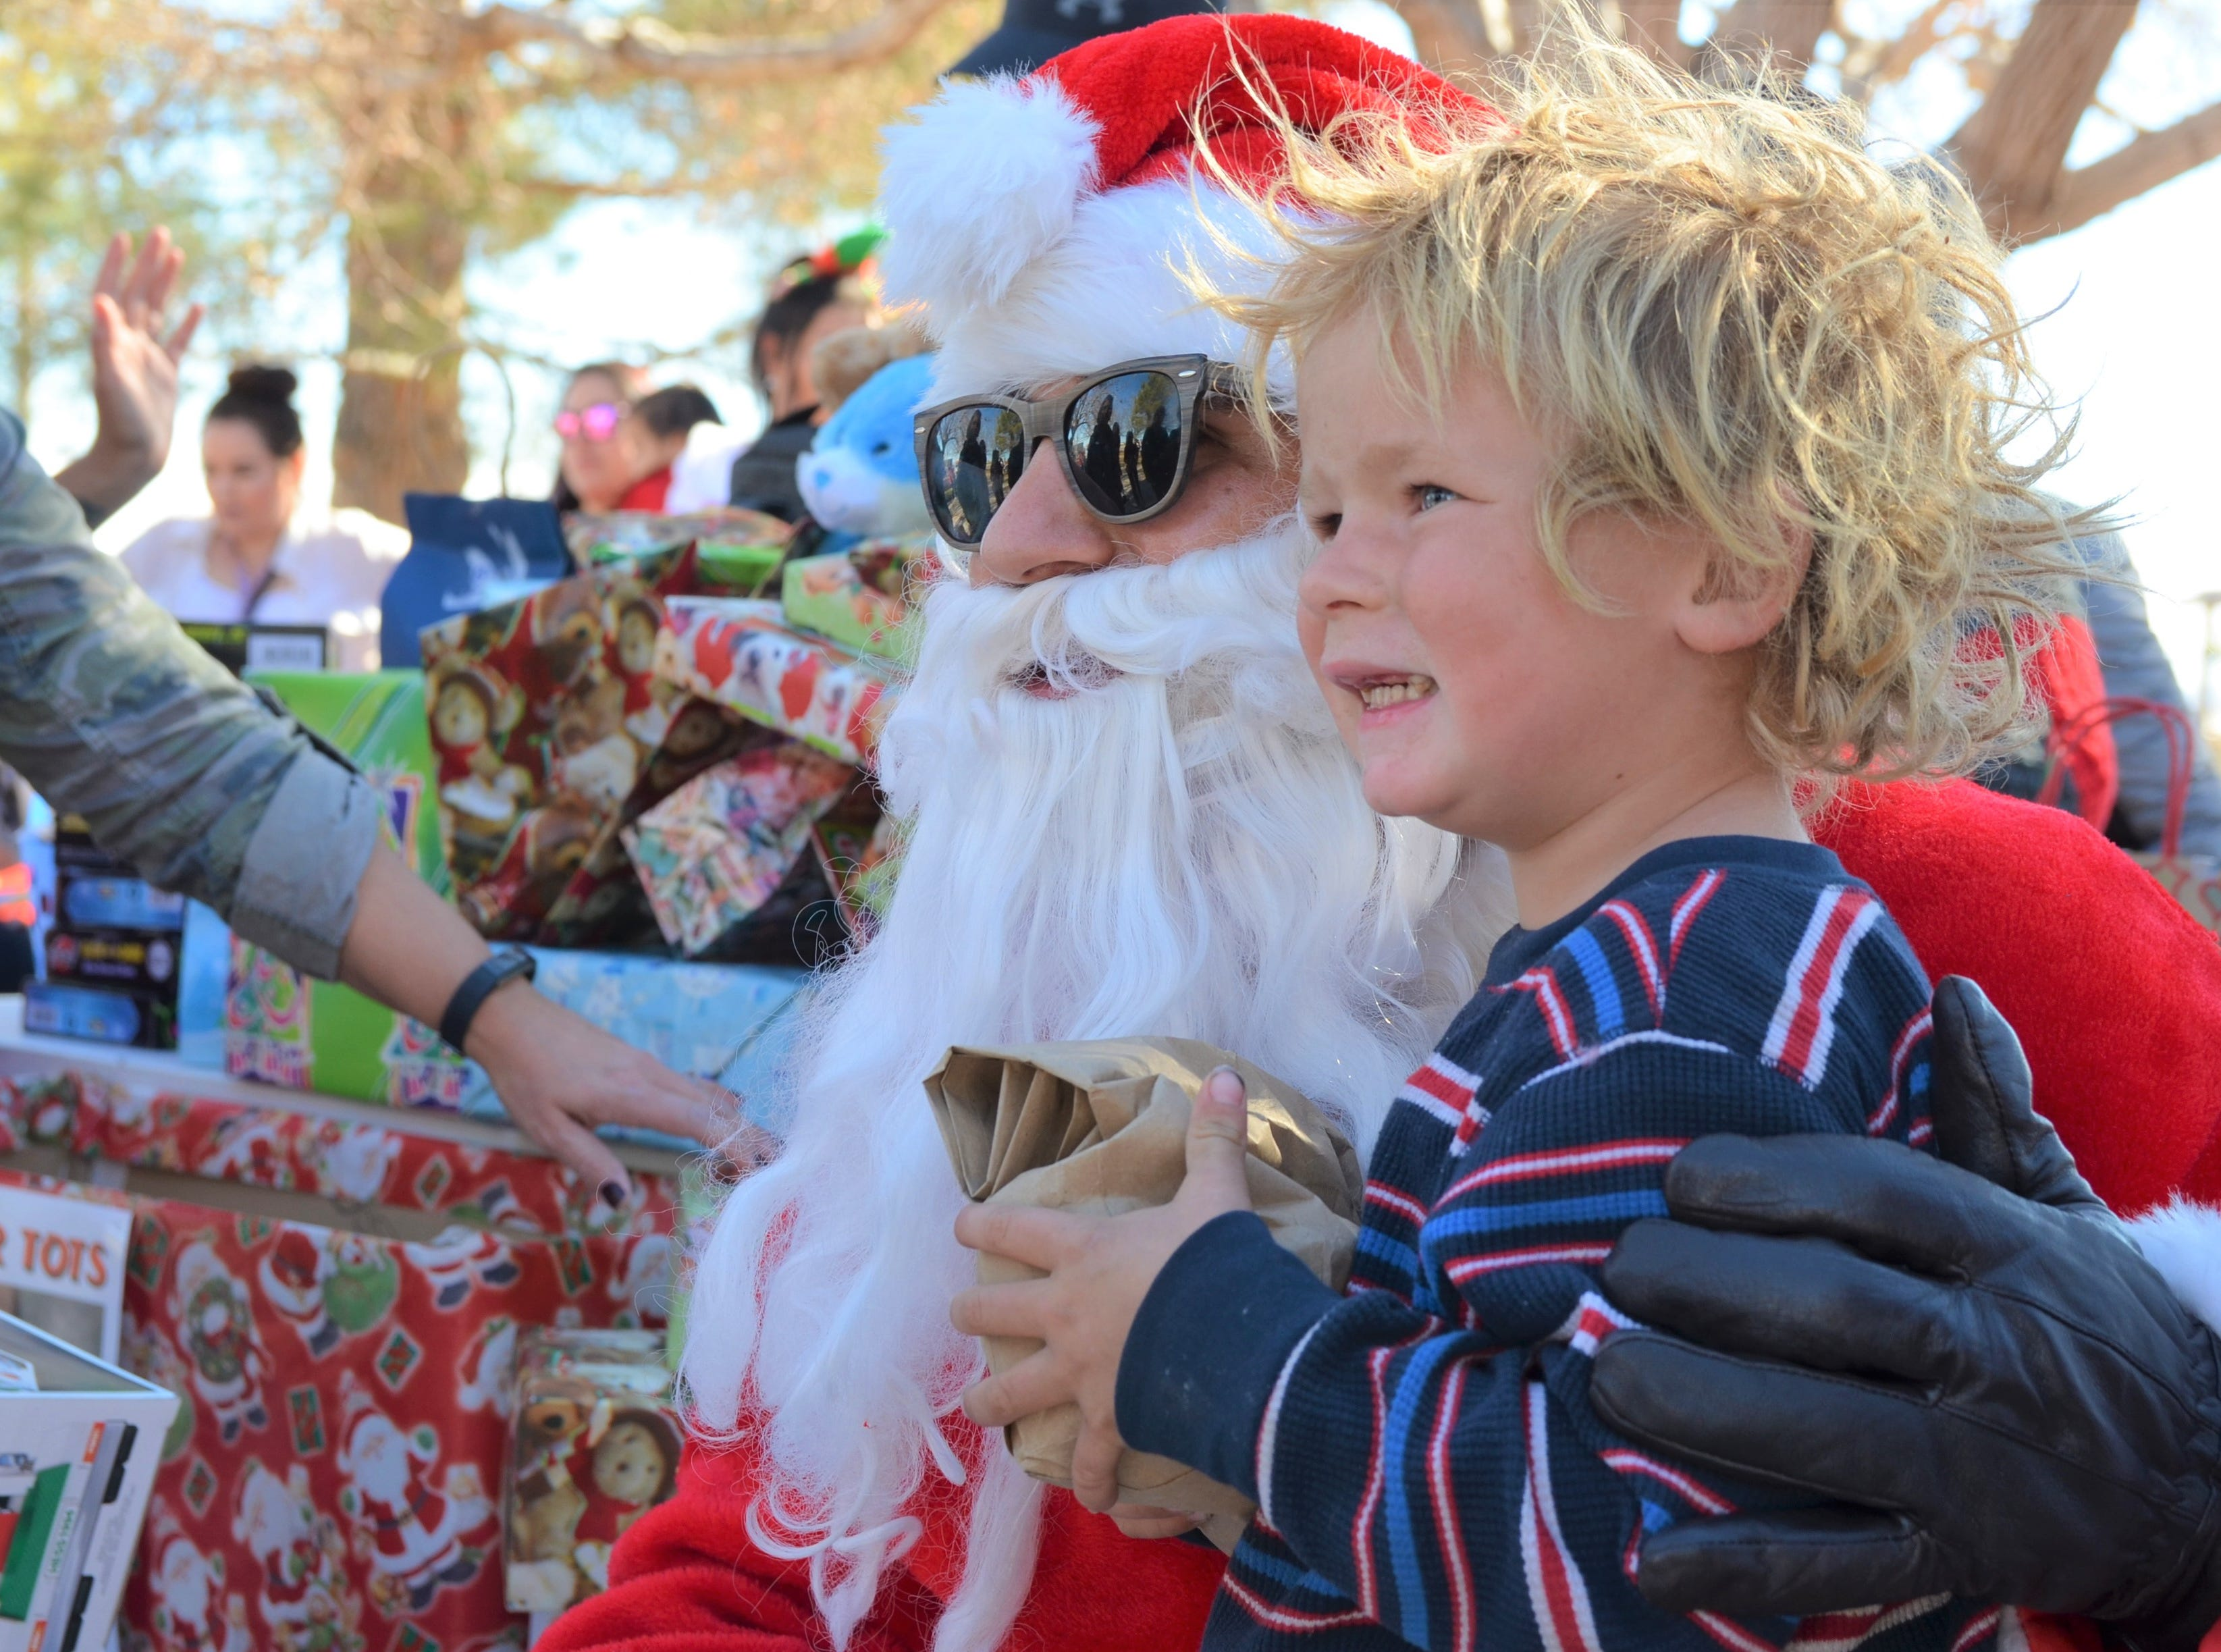 Tj, 4, received a fire truck and a bag of candies after meeting with Santa Claus.